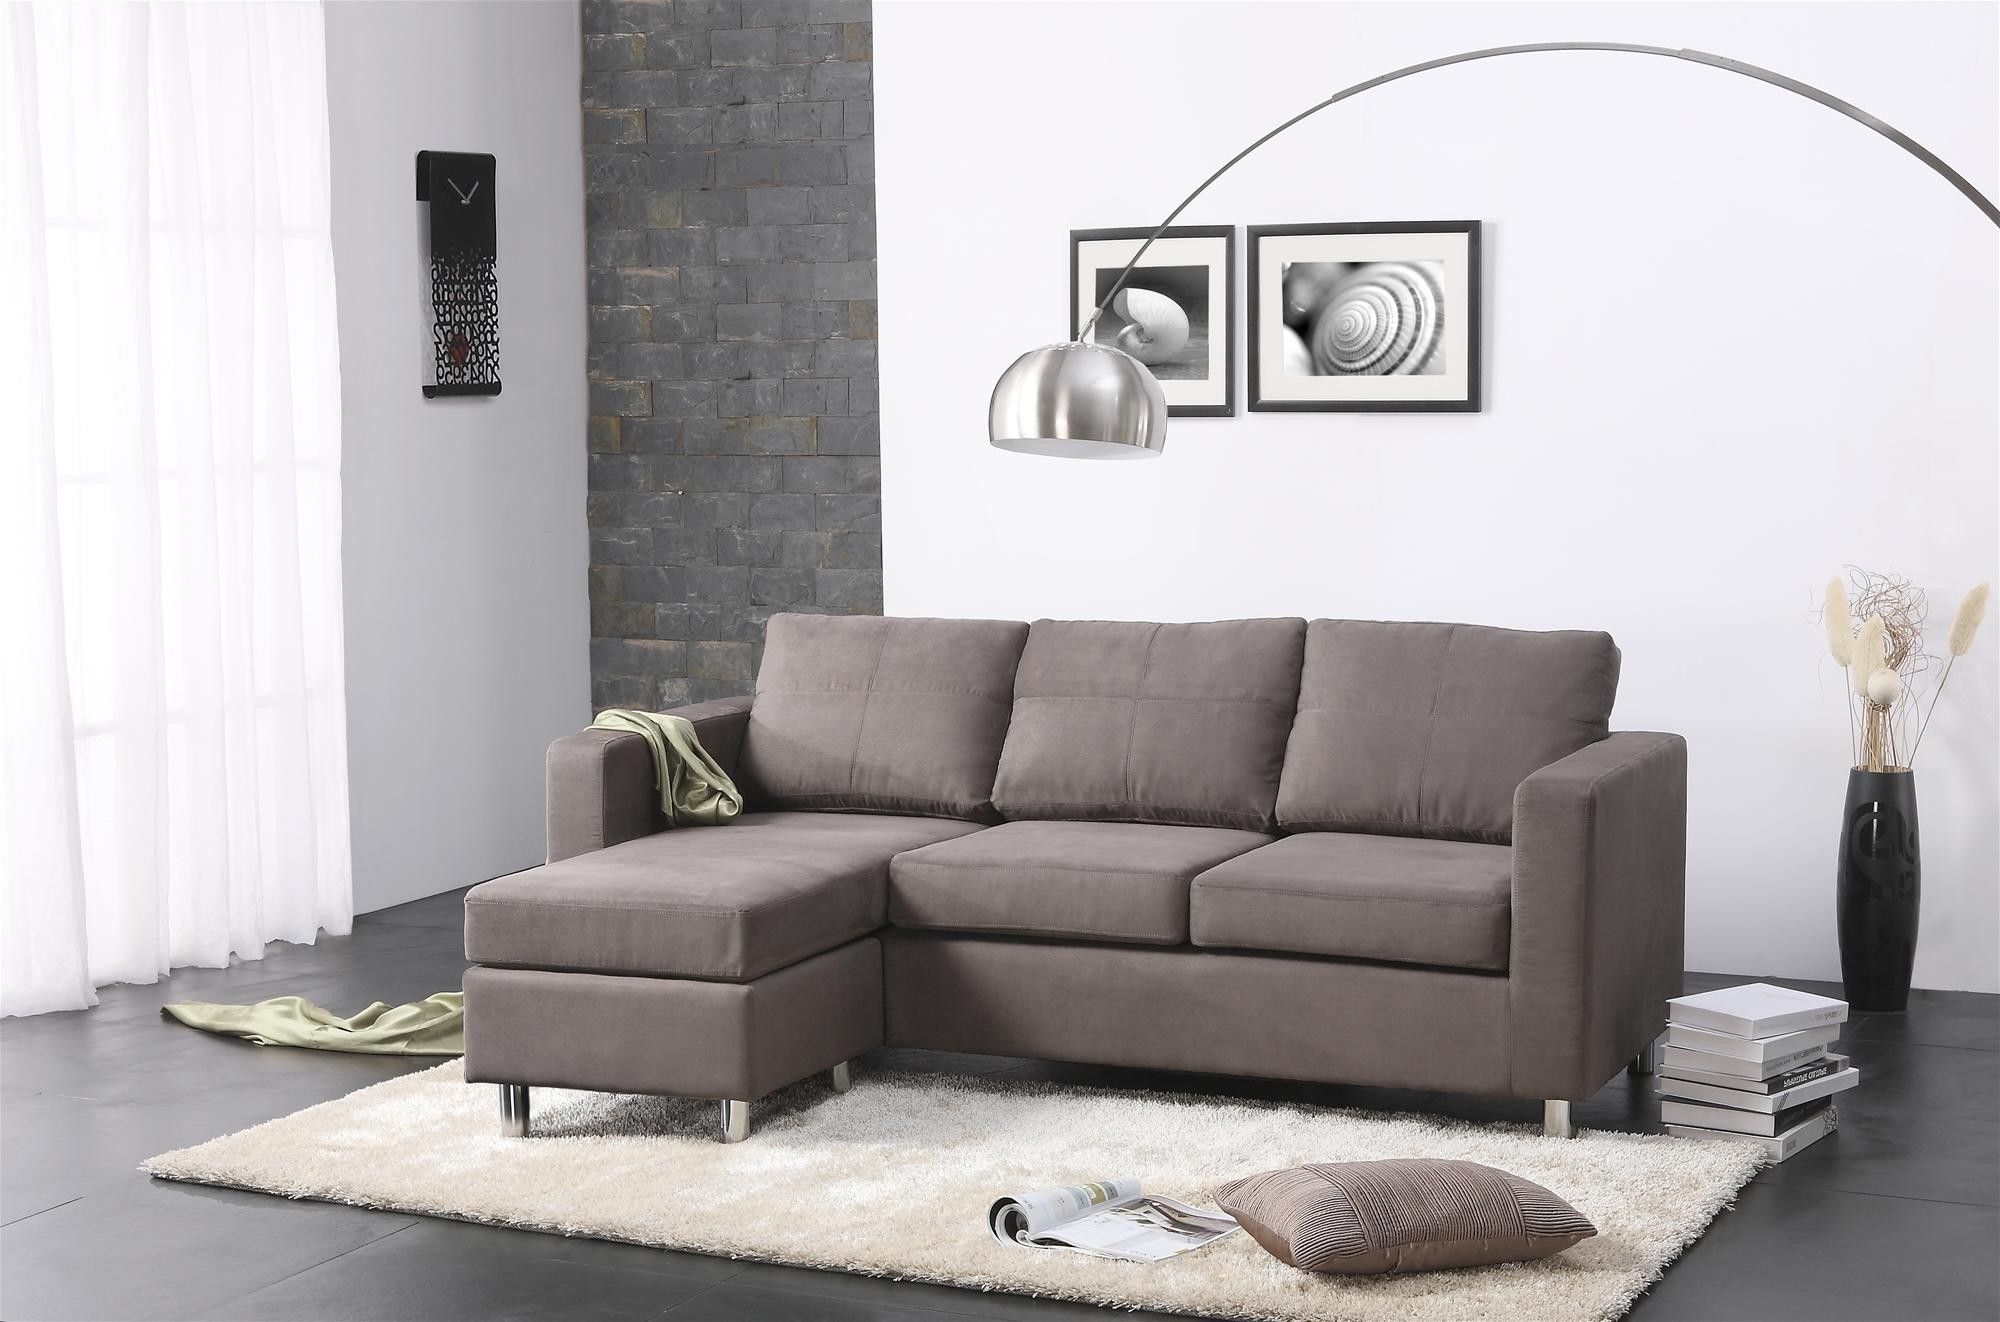 Amazing Modern Small Spaces Living Room Decors With Grey Sectional Regarding Widely Used Modern Sectional Sofas For Small Spaces (View 4 of 20)